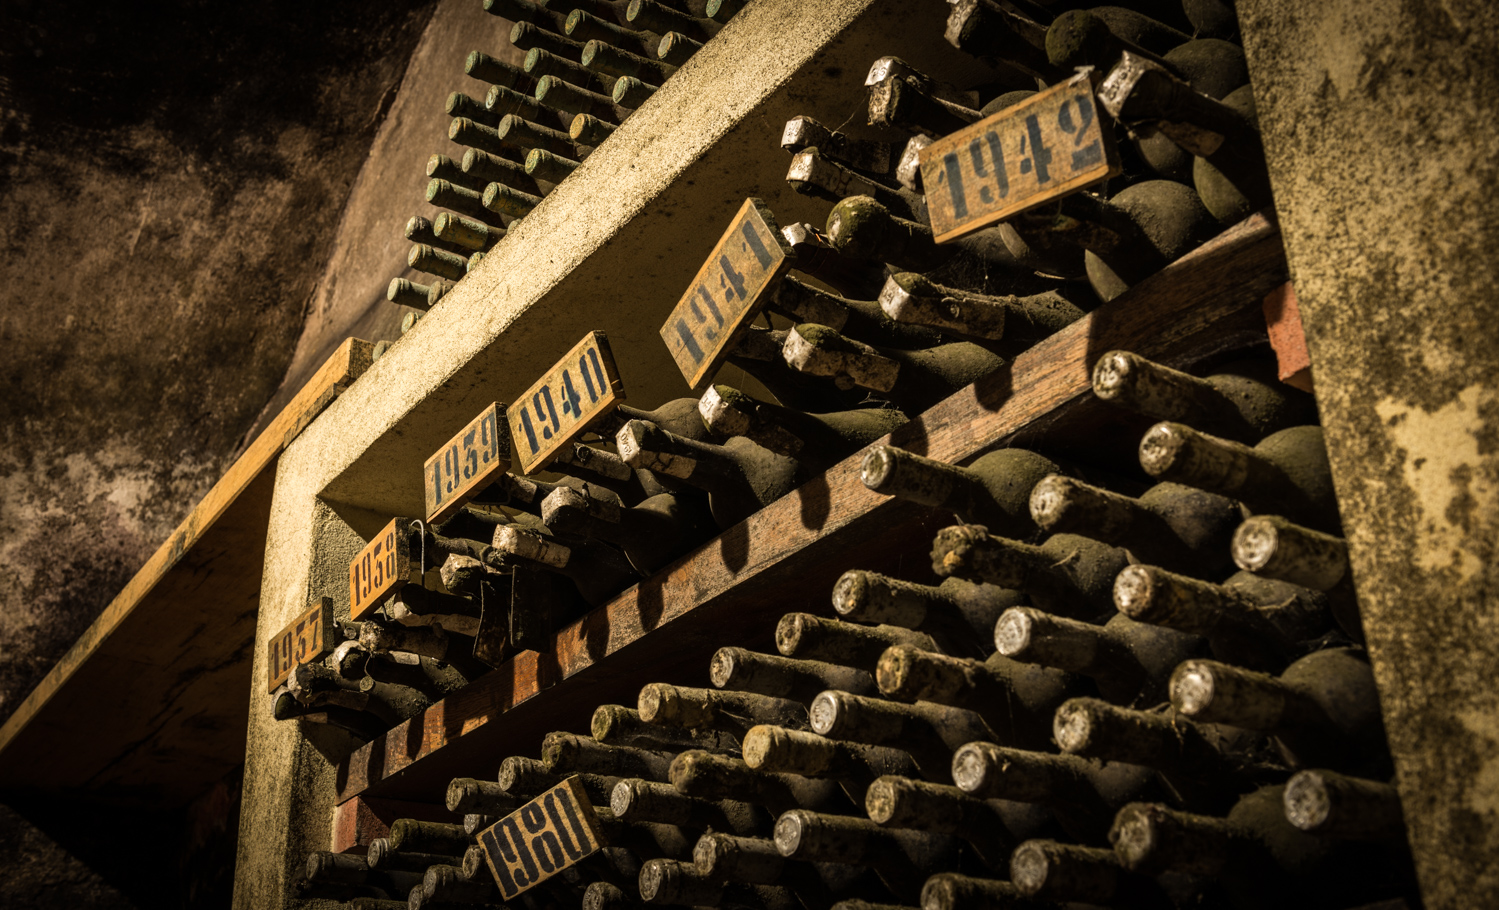 Italy : Tuscany : In the cellar at Badia a Coltibuono in Chianti Classico